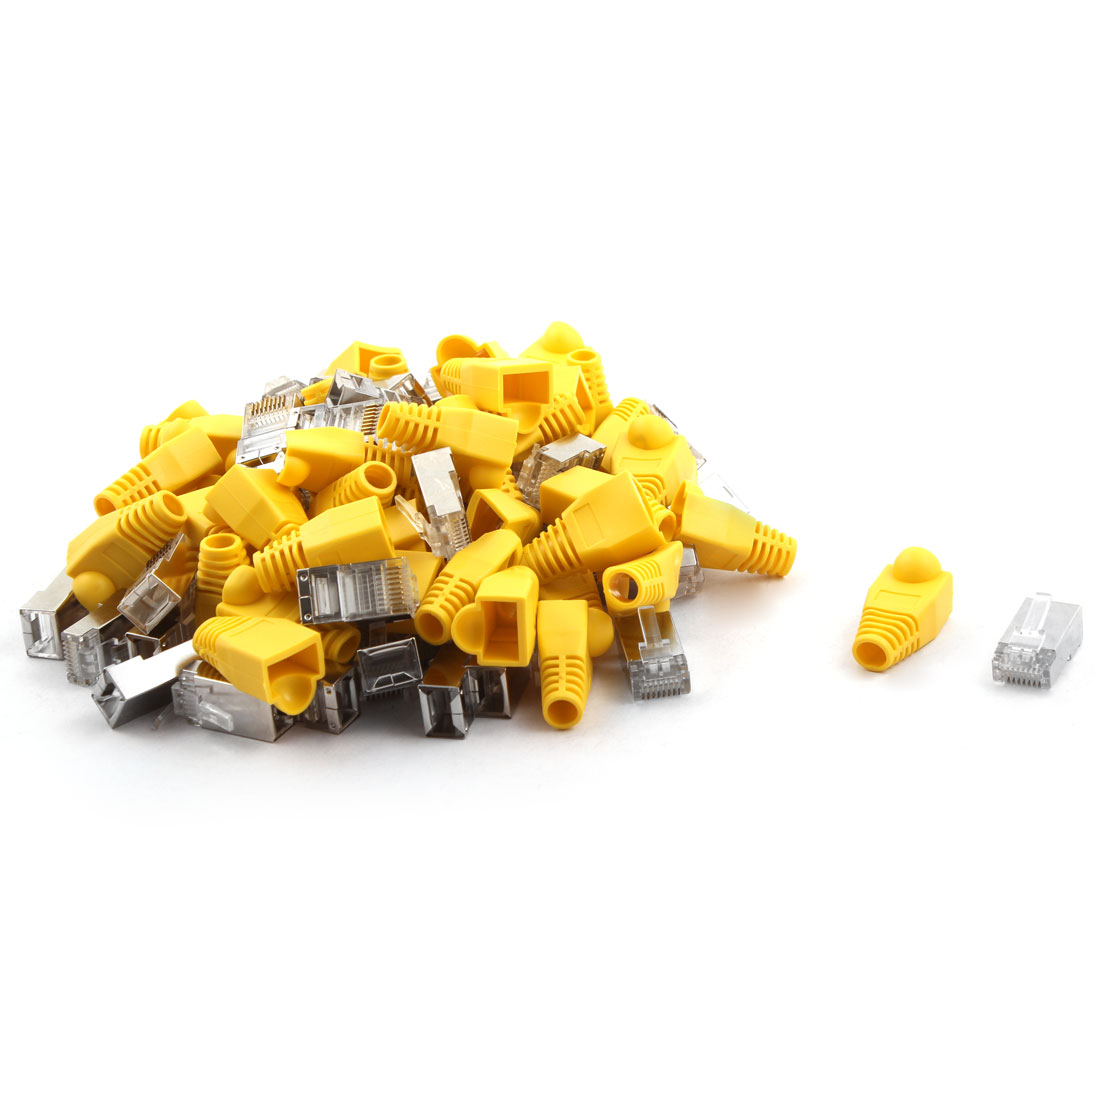 Household DIY Craft Plastic RJ45 8P8C Modular Network Adapter Connector 50pcs w Boot Guard